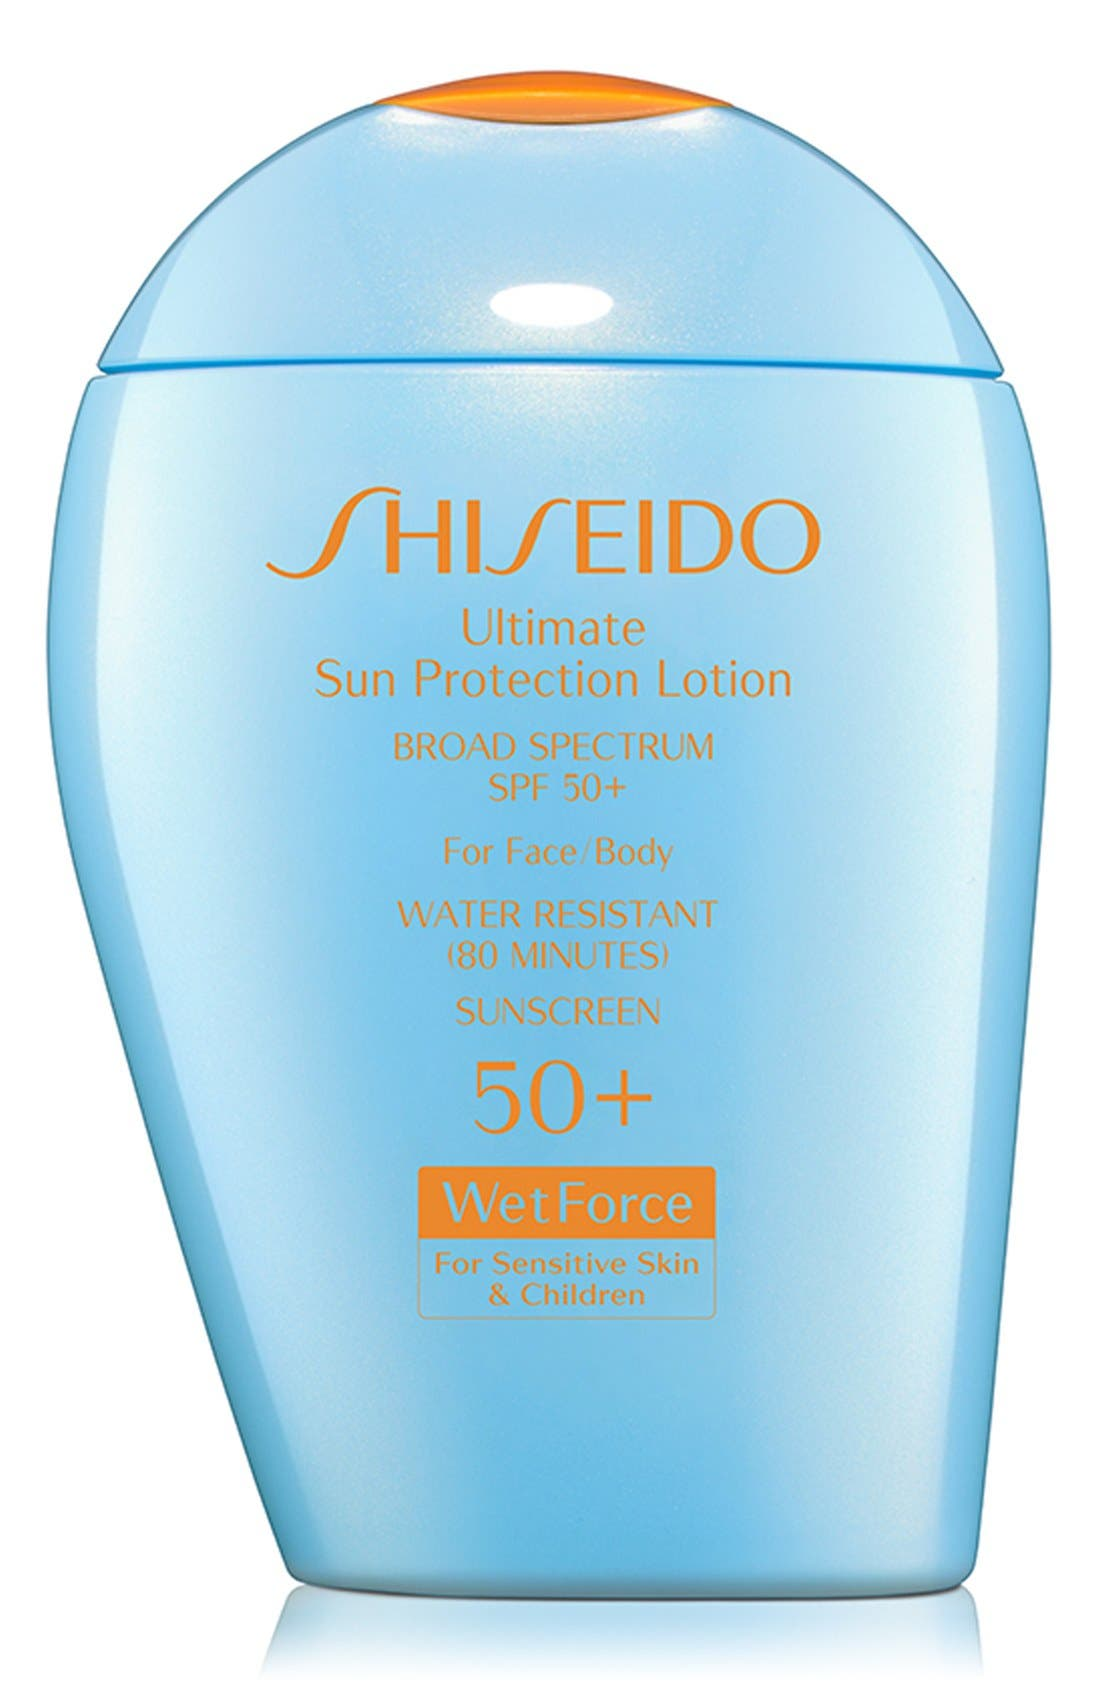 Ultimate Sun Protection Lotion for Sensitive Skin & Children Broad Spectrum SPF 50+,                             Main thumbnail 1, color,                             NO COLOR